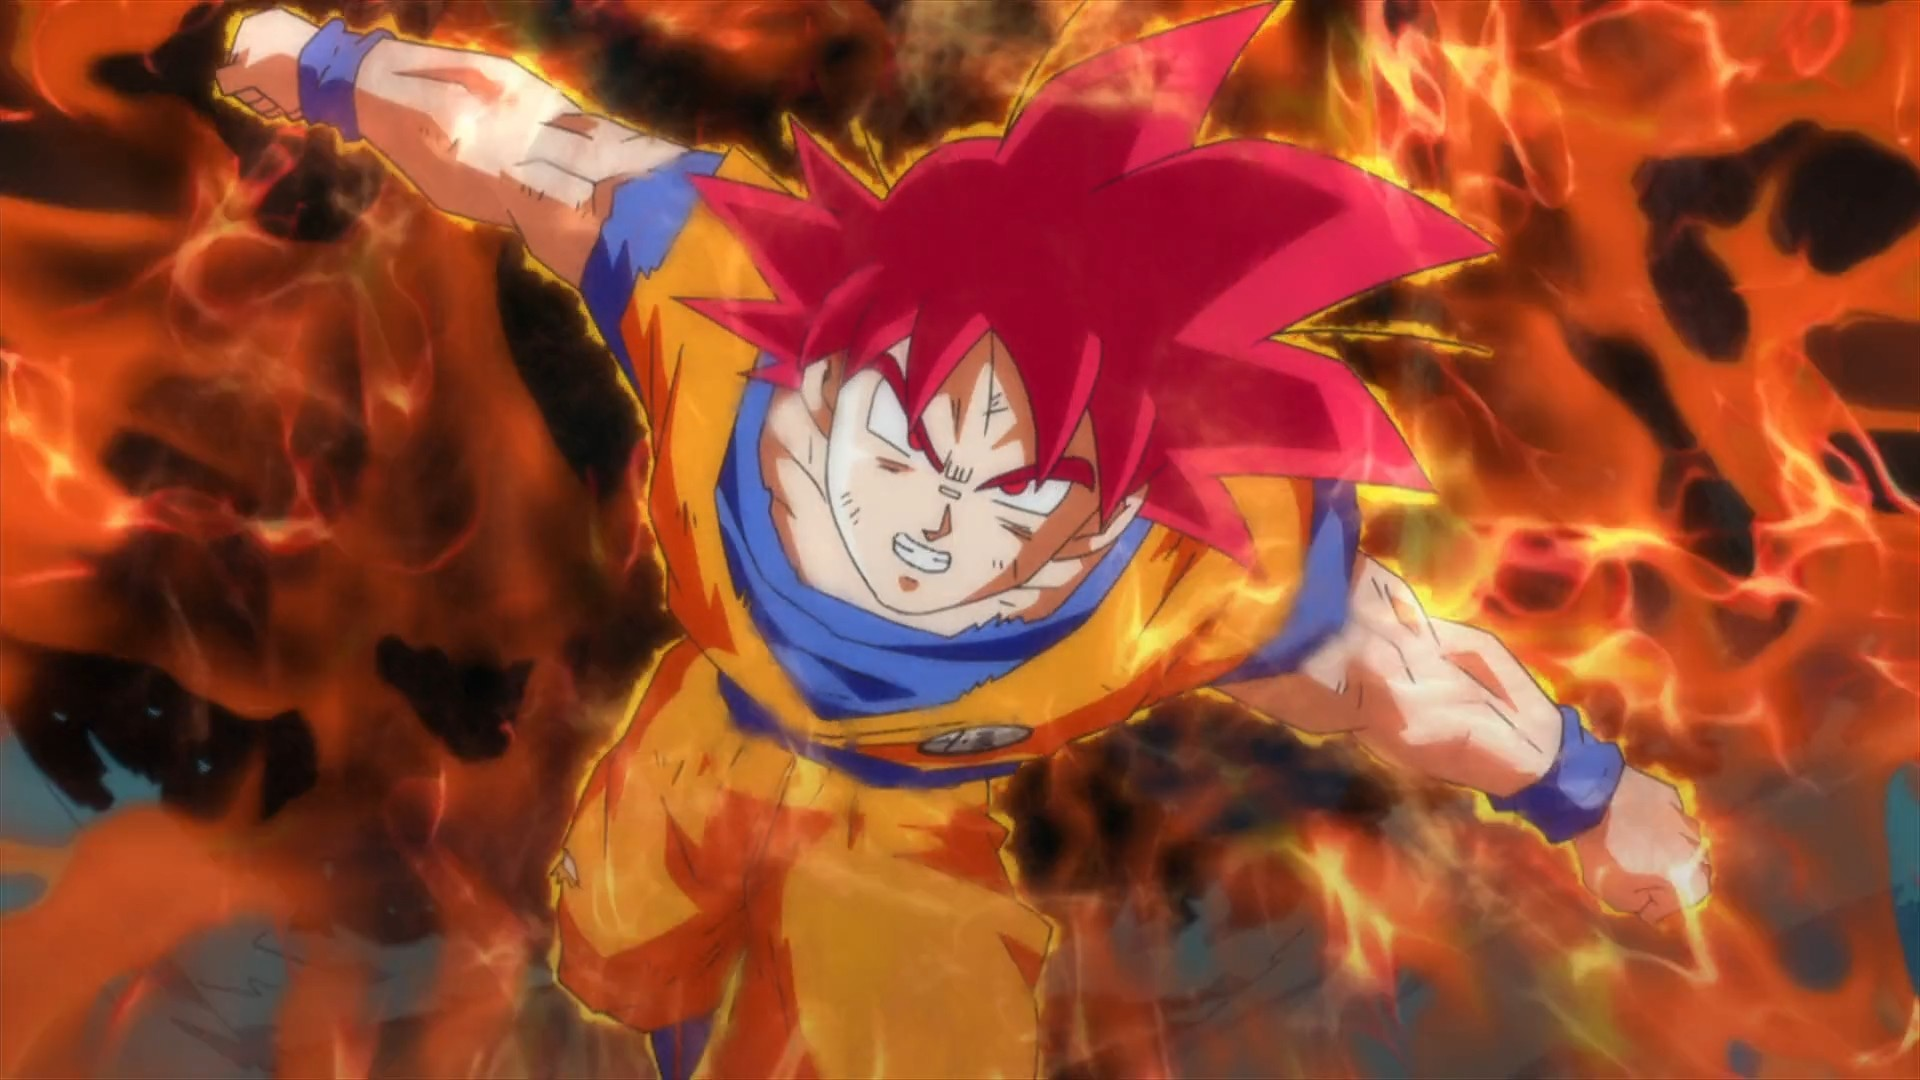 Super saiyan god goku wallpaper 71 images - Dragon ball super background music mp3 download ...